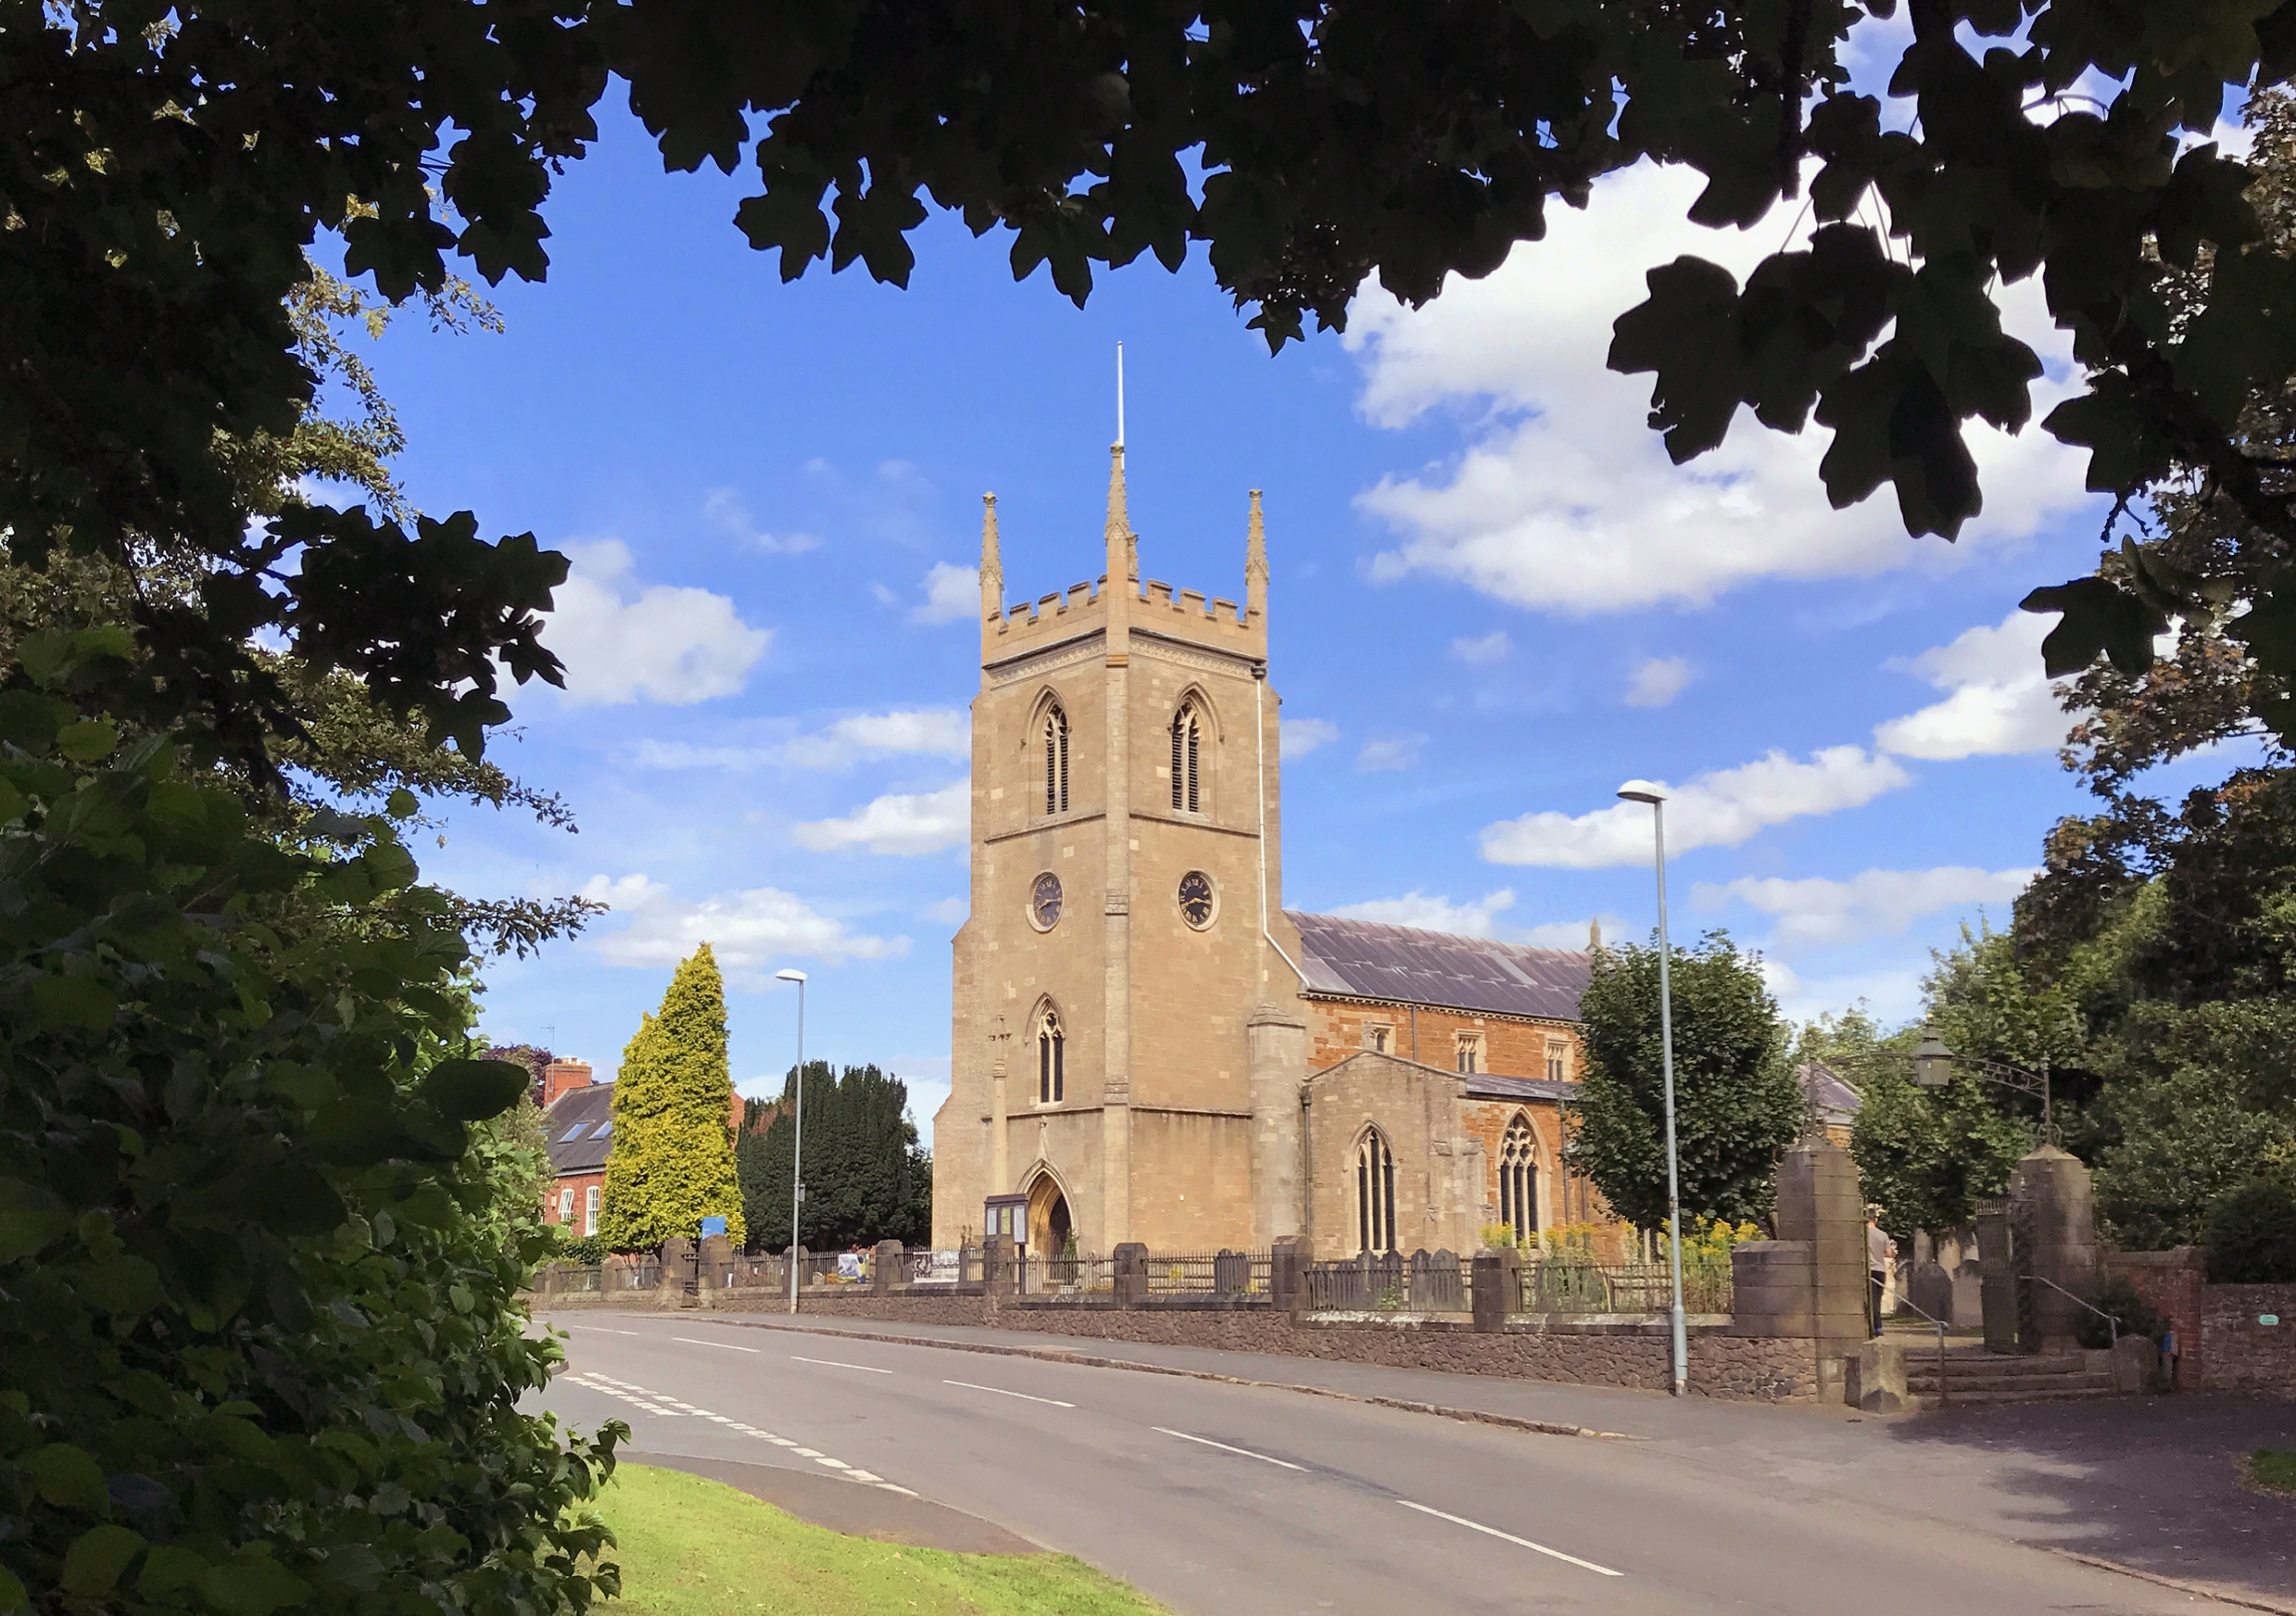 The parish church of the two Kibworth villages